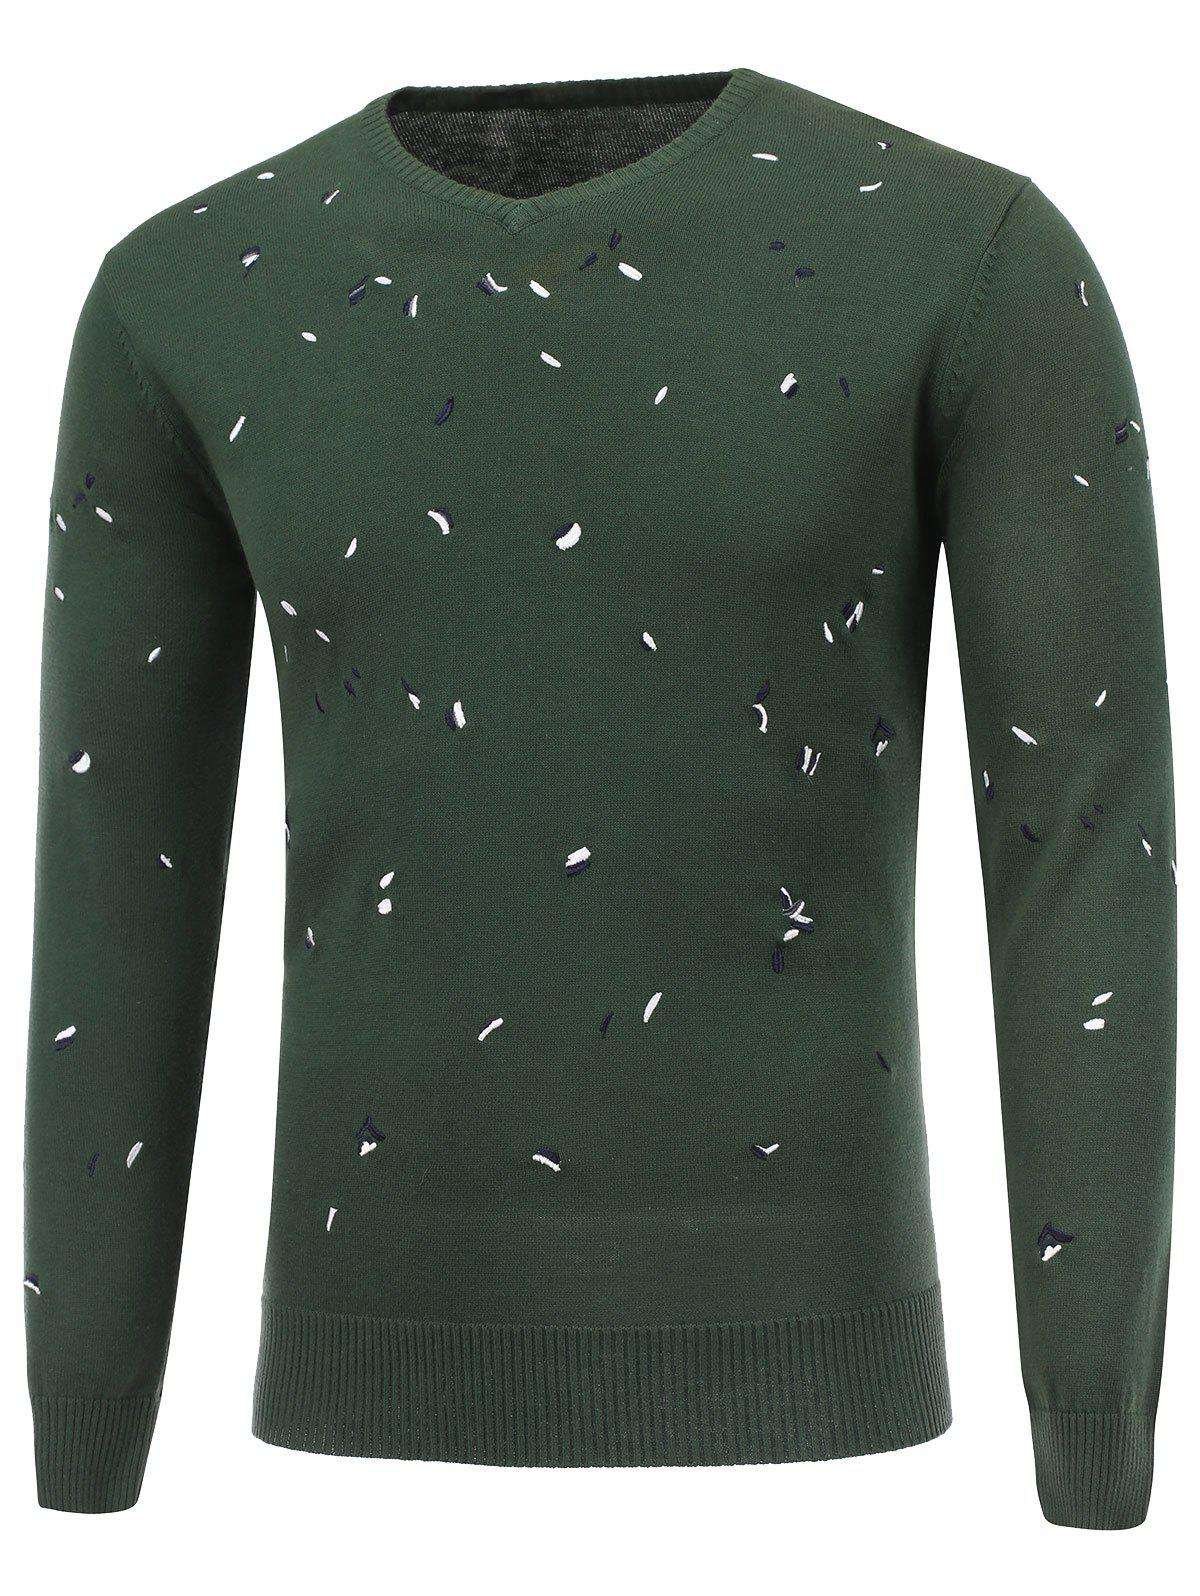 V Neck Embroidered Pullover Sweater - DEEP GREEN L